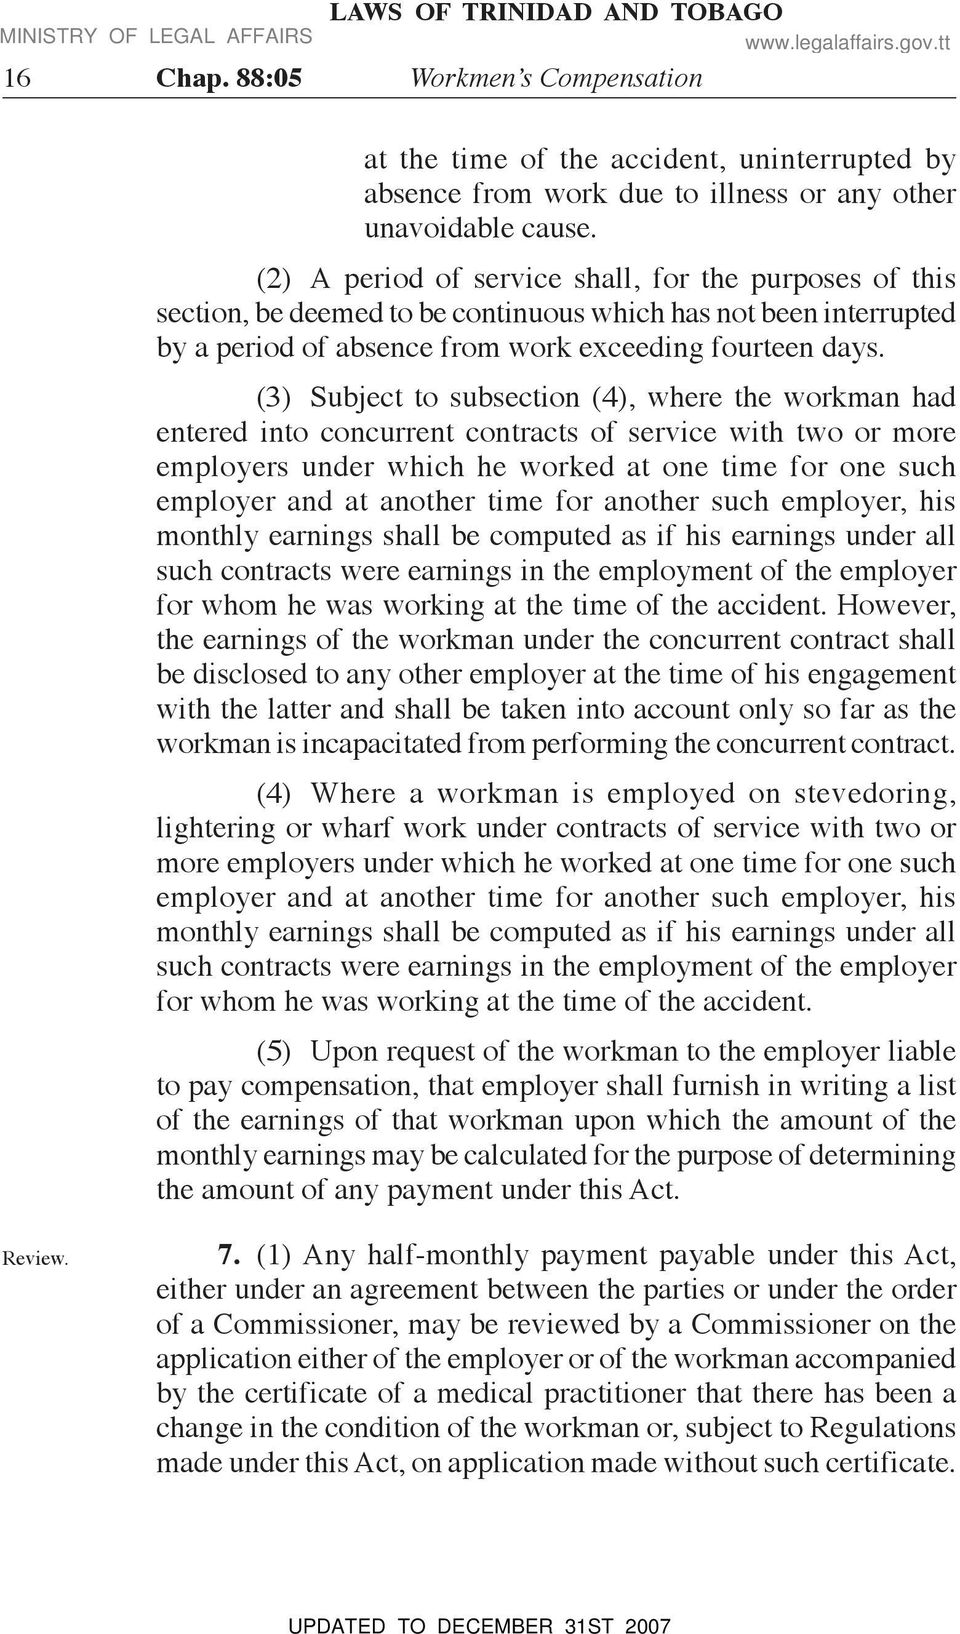 (3) Subject to subsection (4), where the workman had entered into concurrent contracts of service with two or more employers under which he worked at one time for one such employer and at another